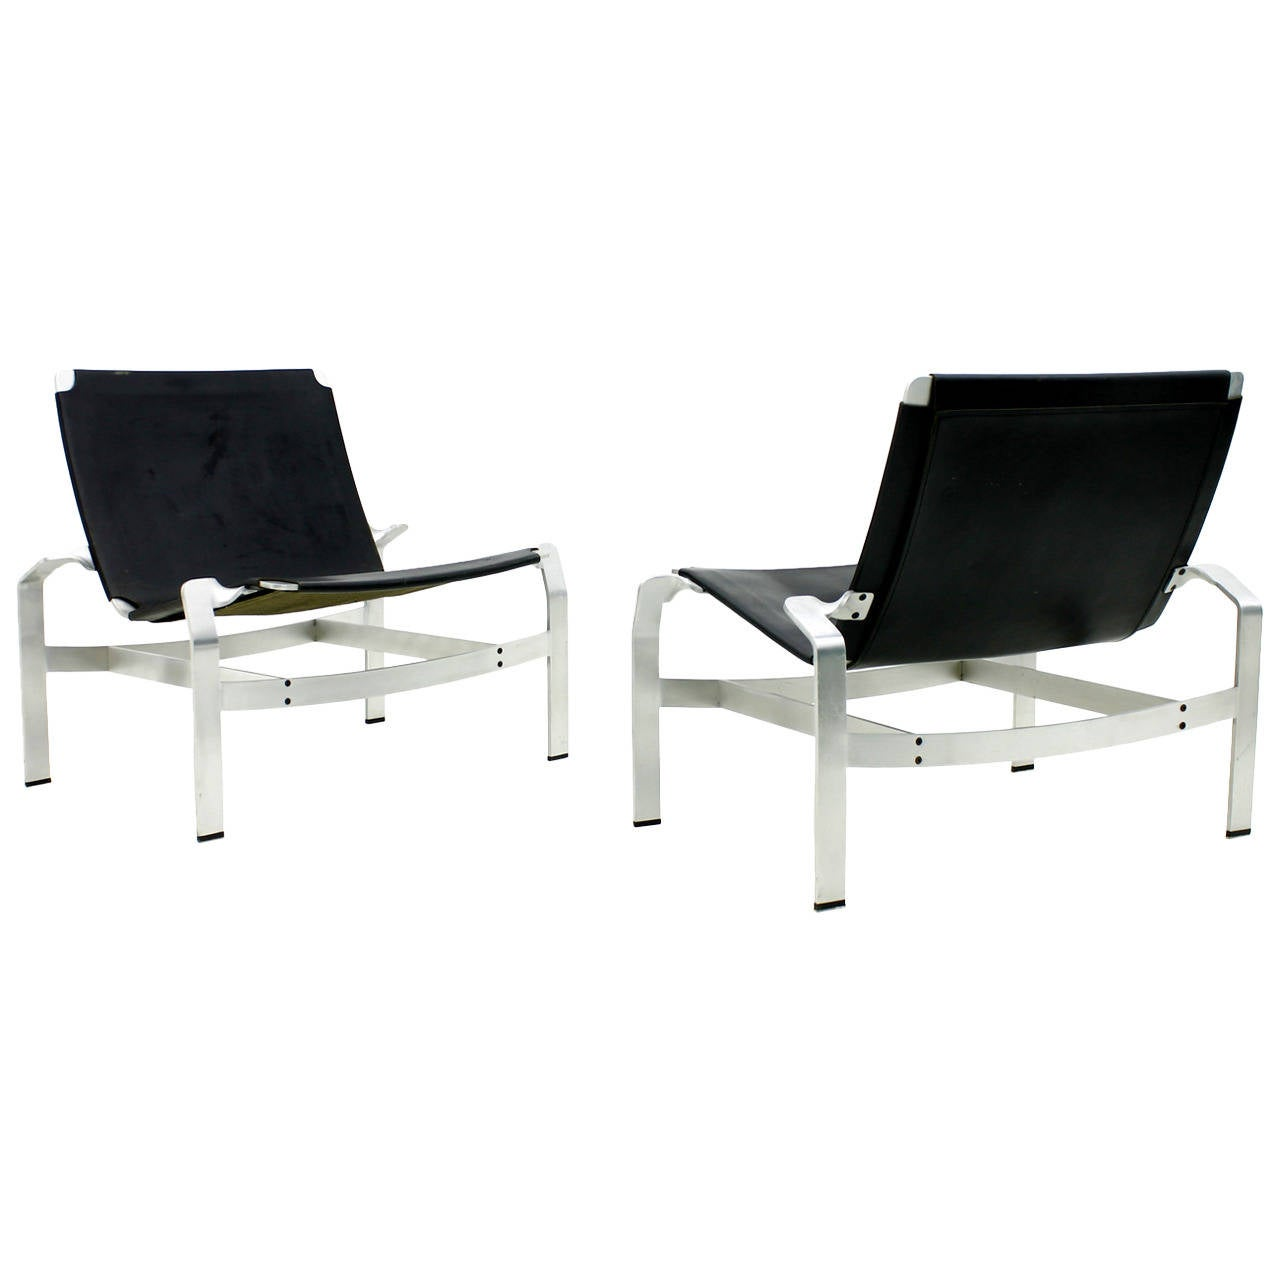 Pair of Lounge Chairs in Aluminum and Leather, Attributed to David De Majo